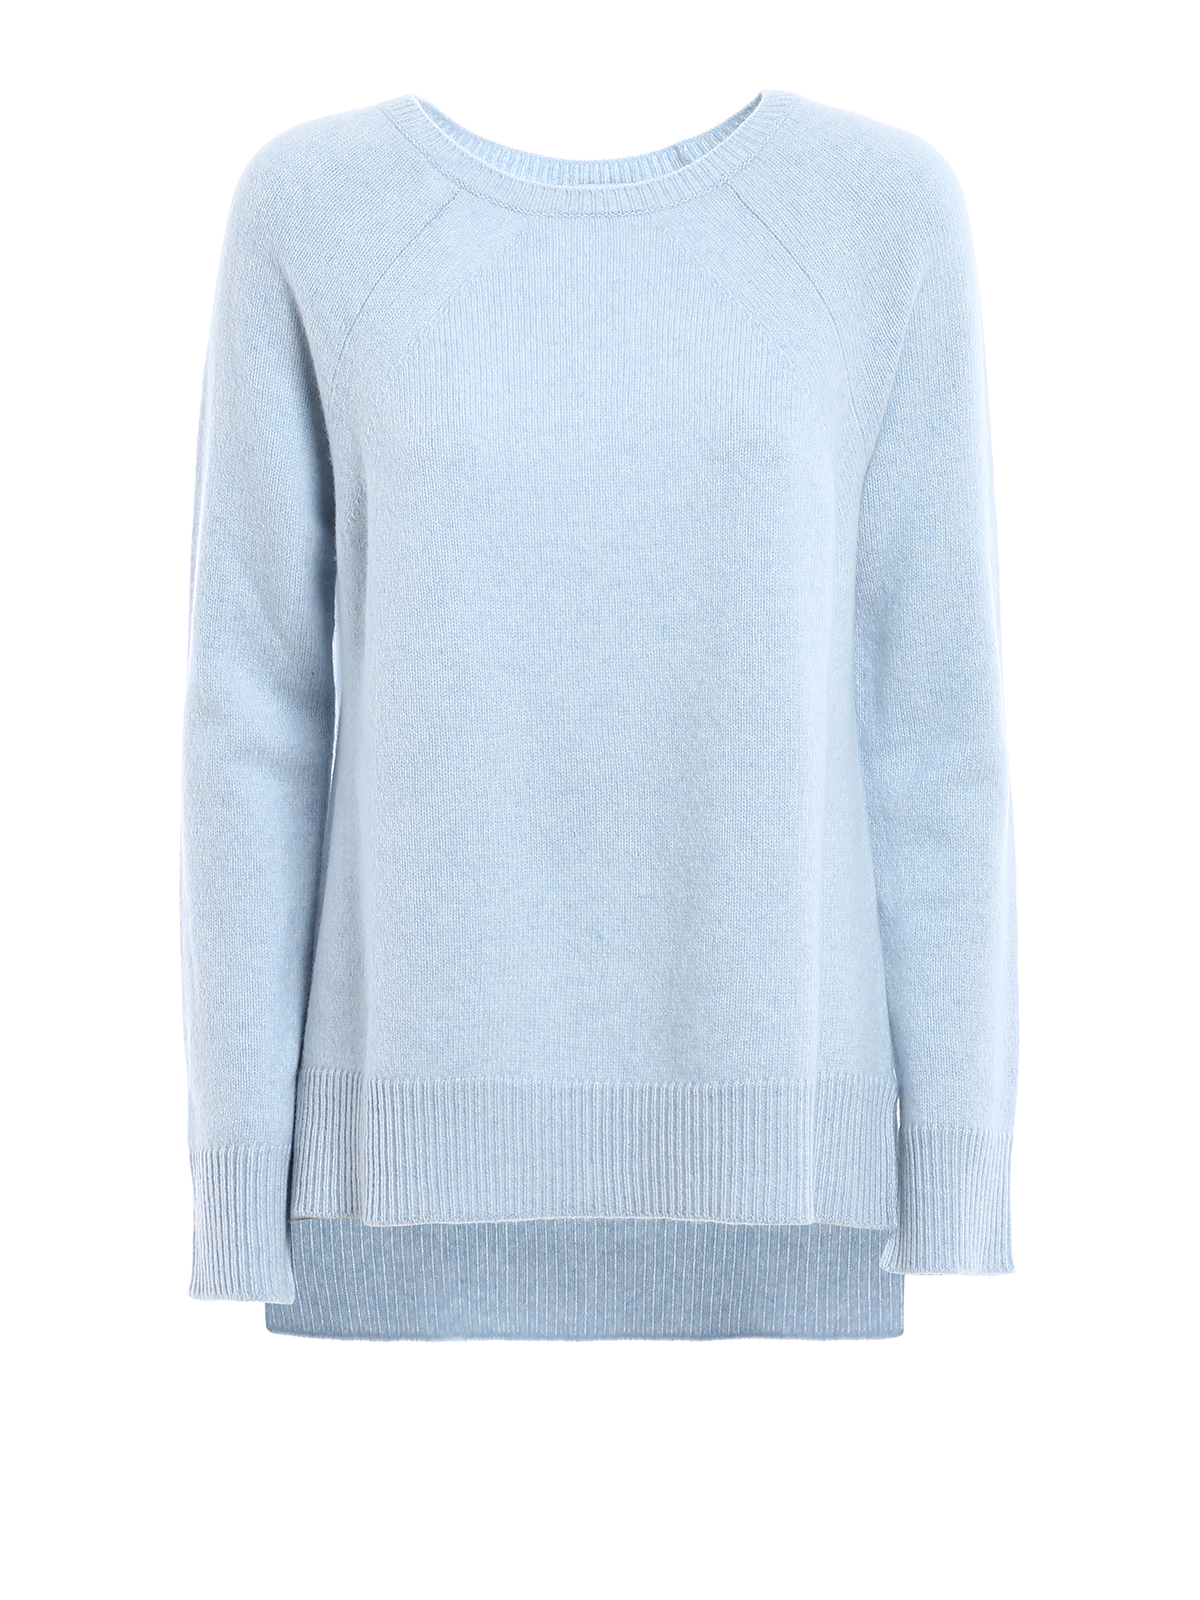 Merino wool and cashmere sweater by Dondup